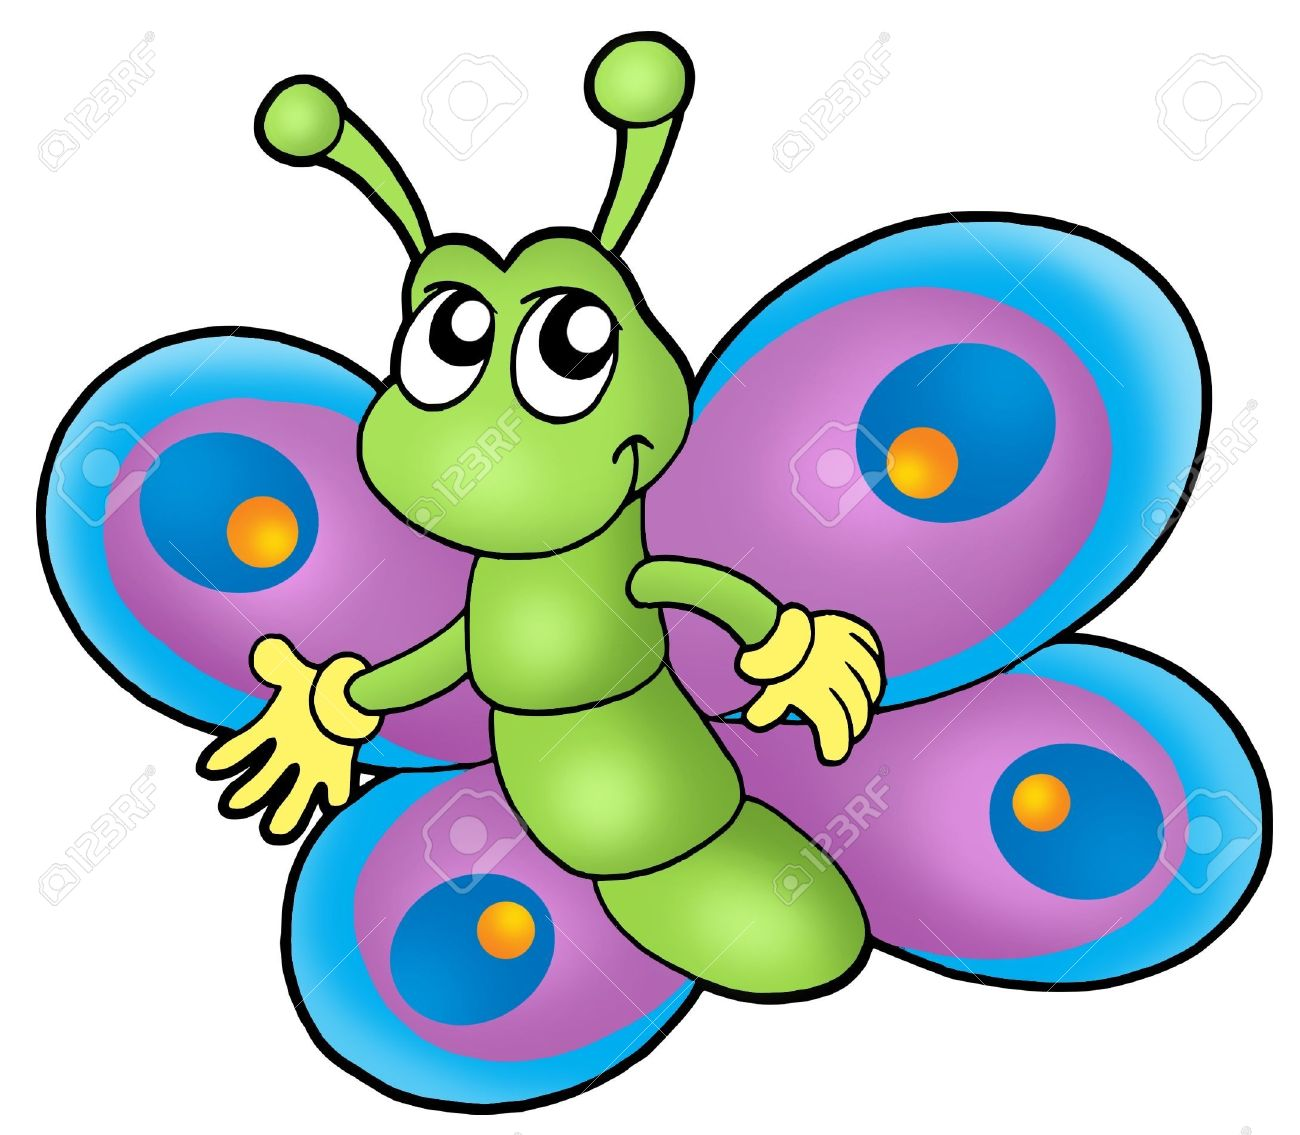 Small Cartoon Butterfly - Color Illustration. Stock Photo, Picture ...